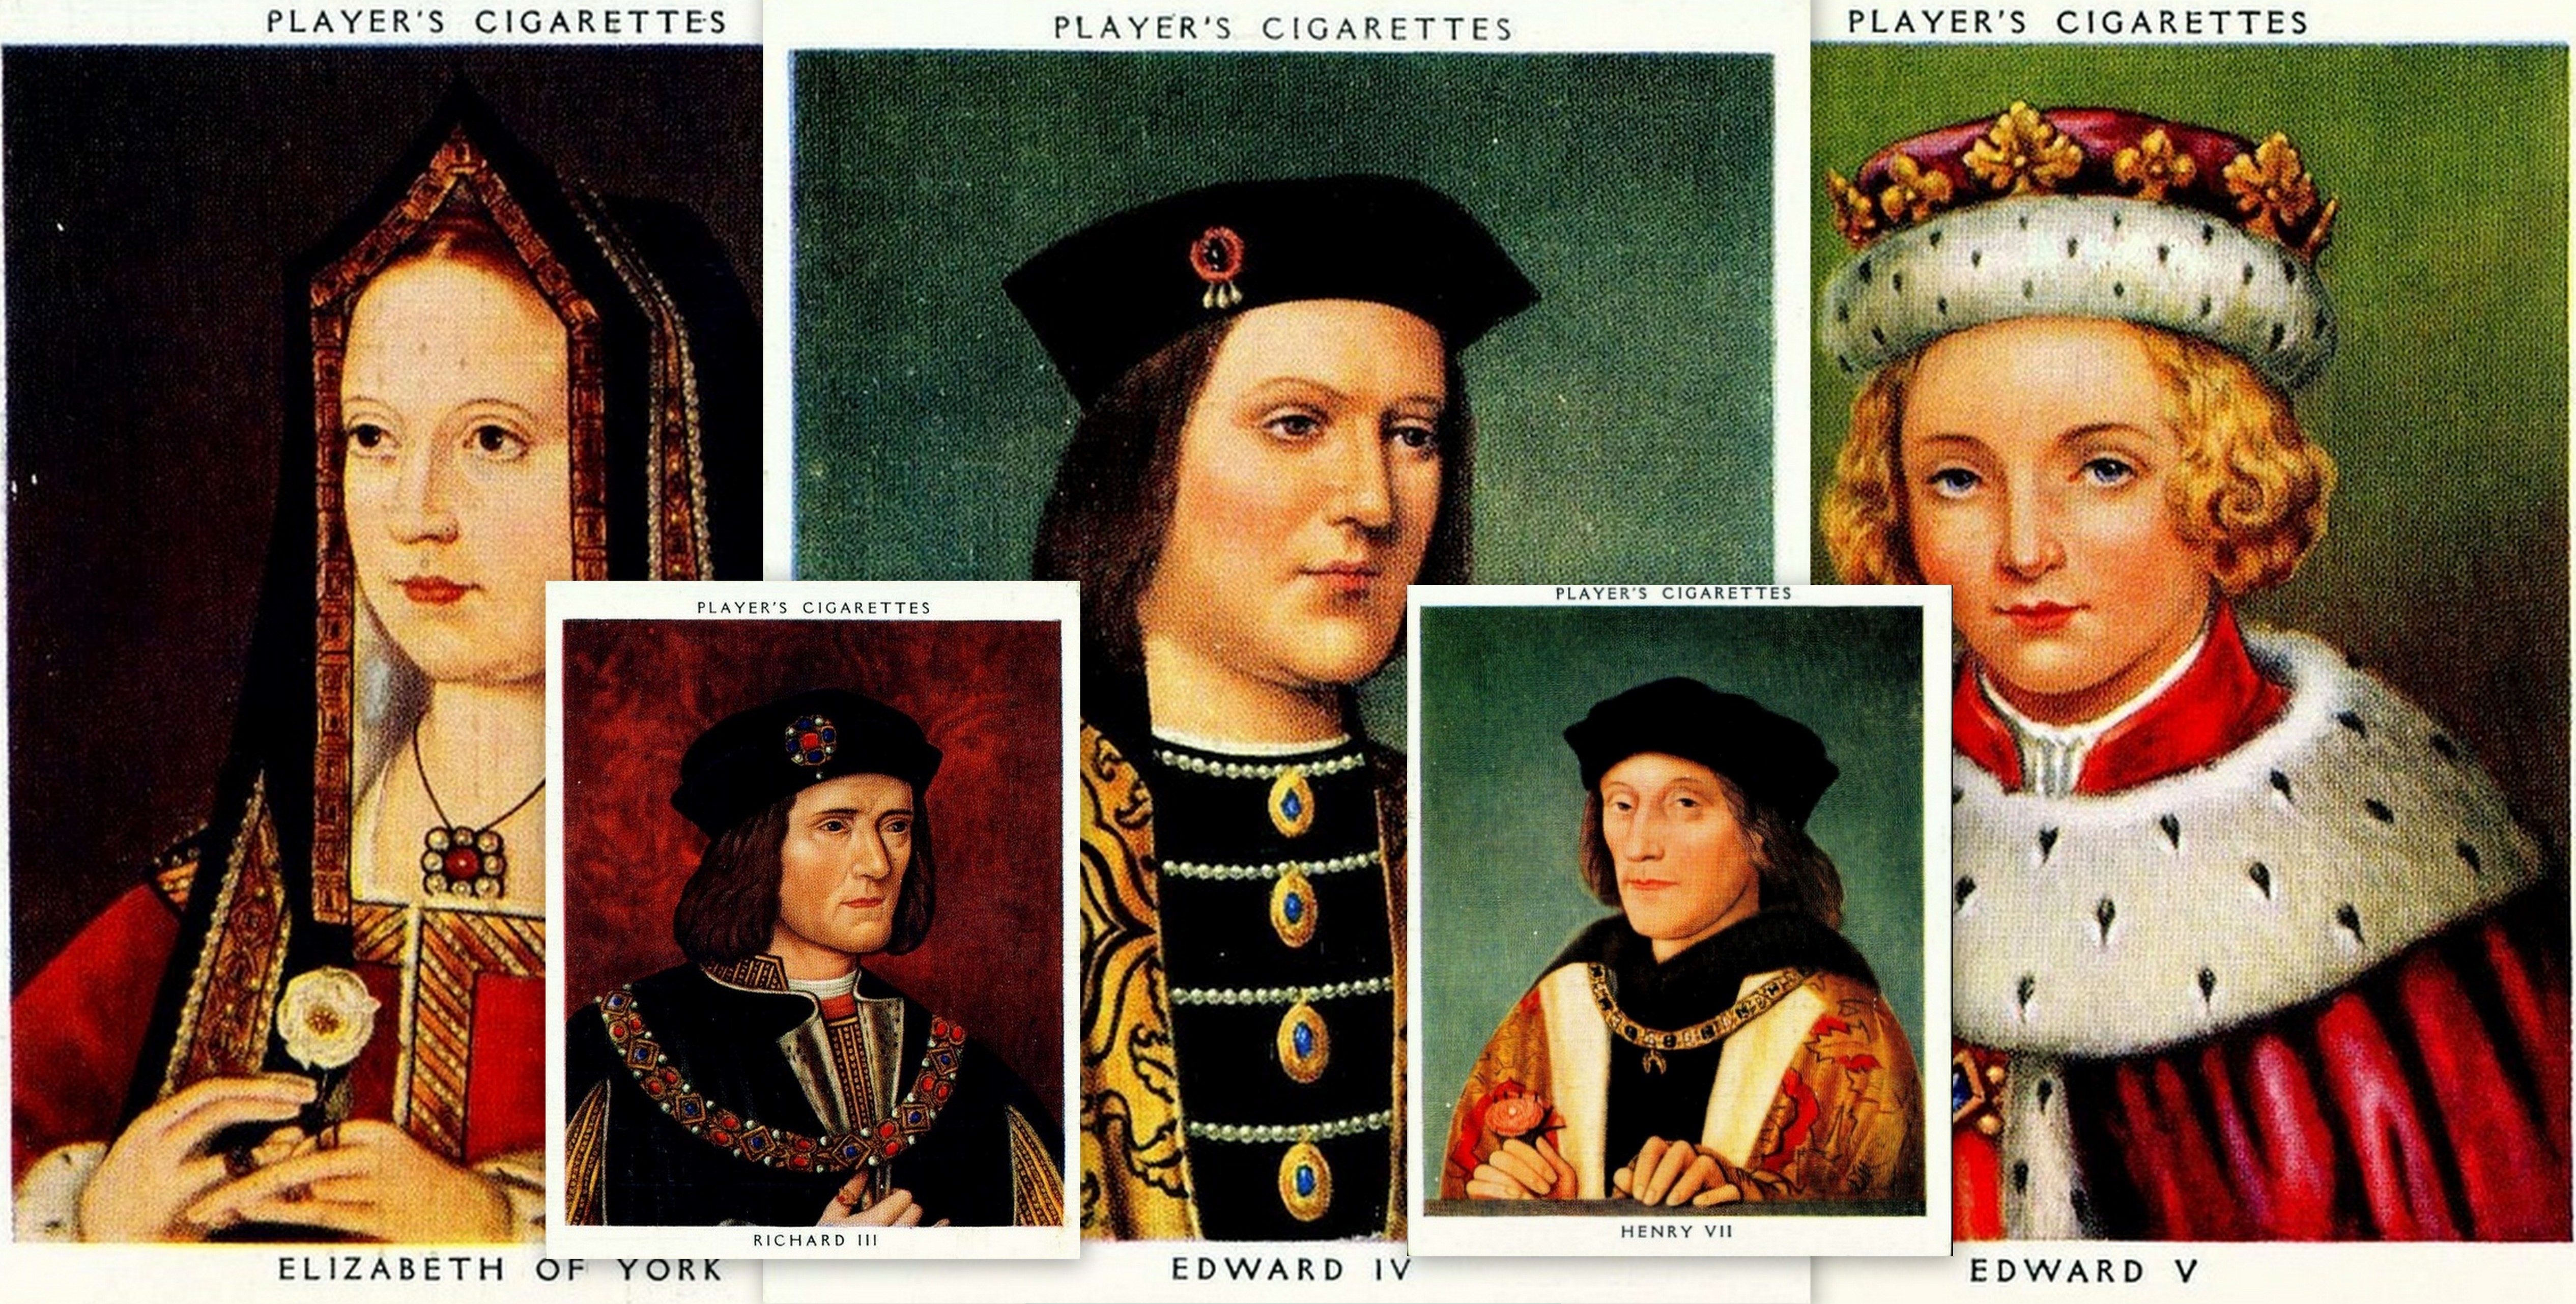 Player's Kings & Queens cigarette cards - Plantagenets to Tudors